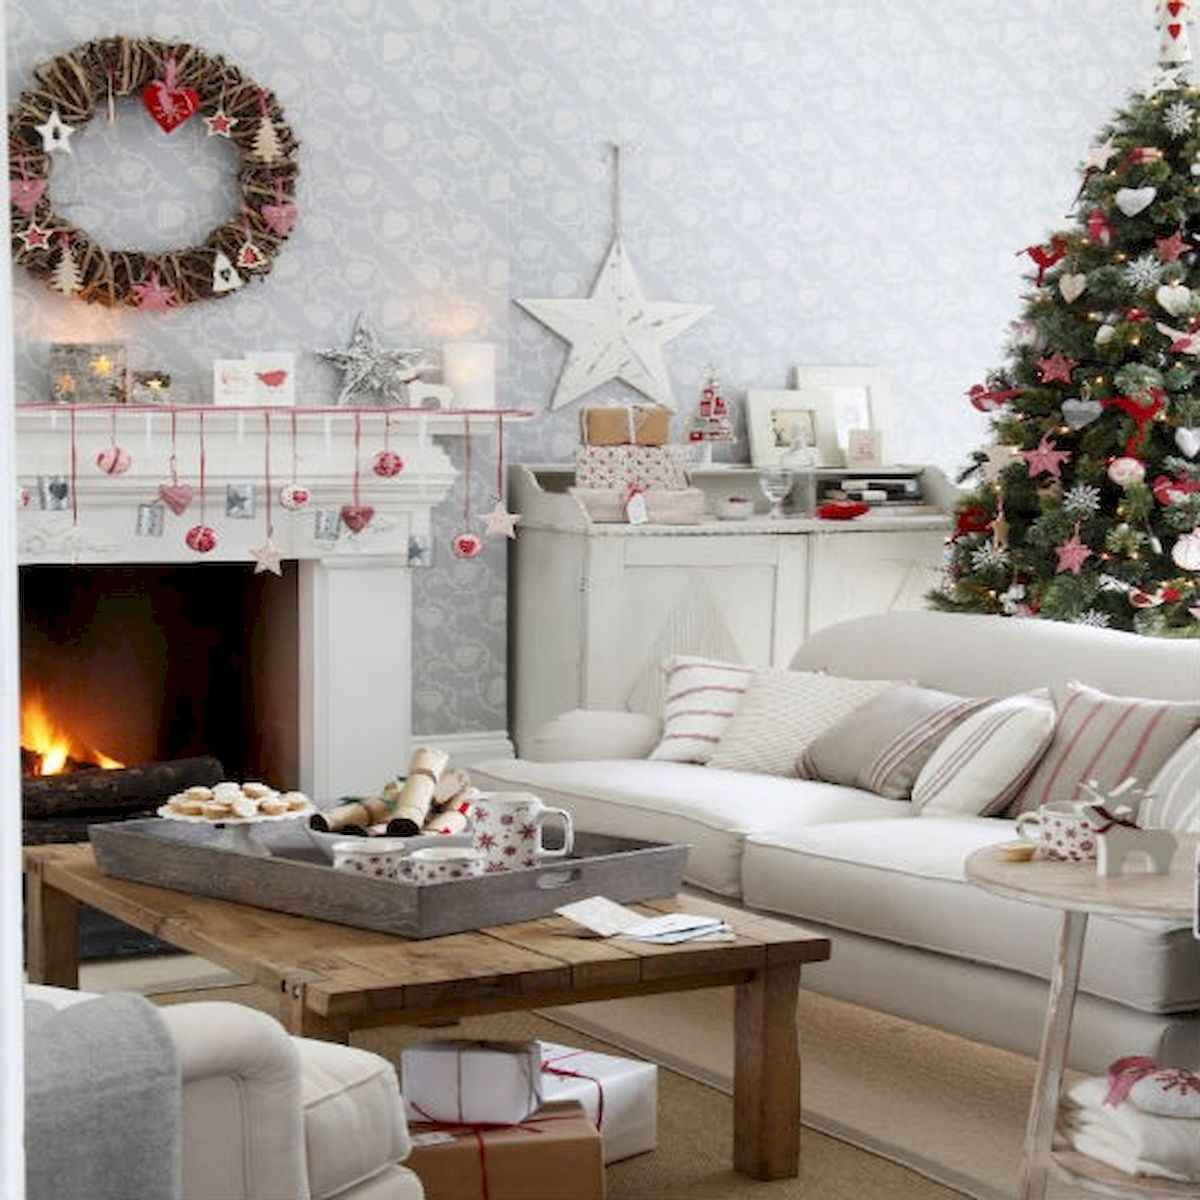 60 Awesome Farmhouse Christmas Decorating Ideas And Makeover (8)